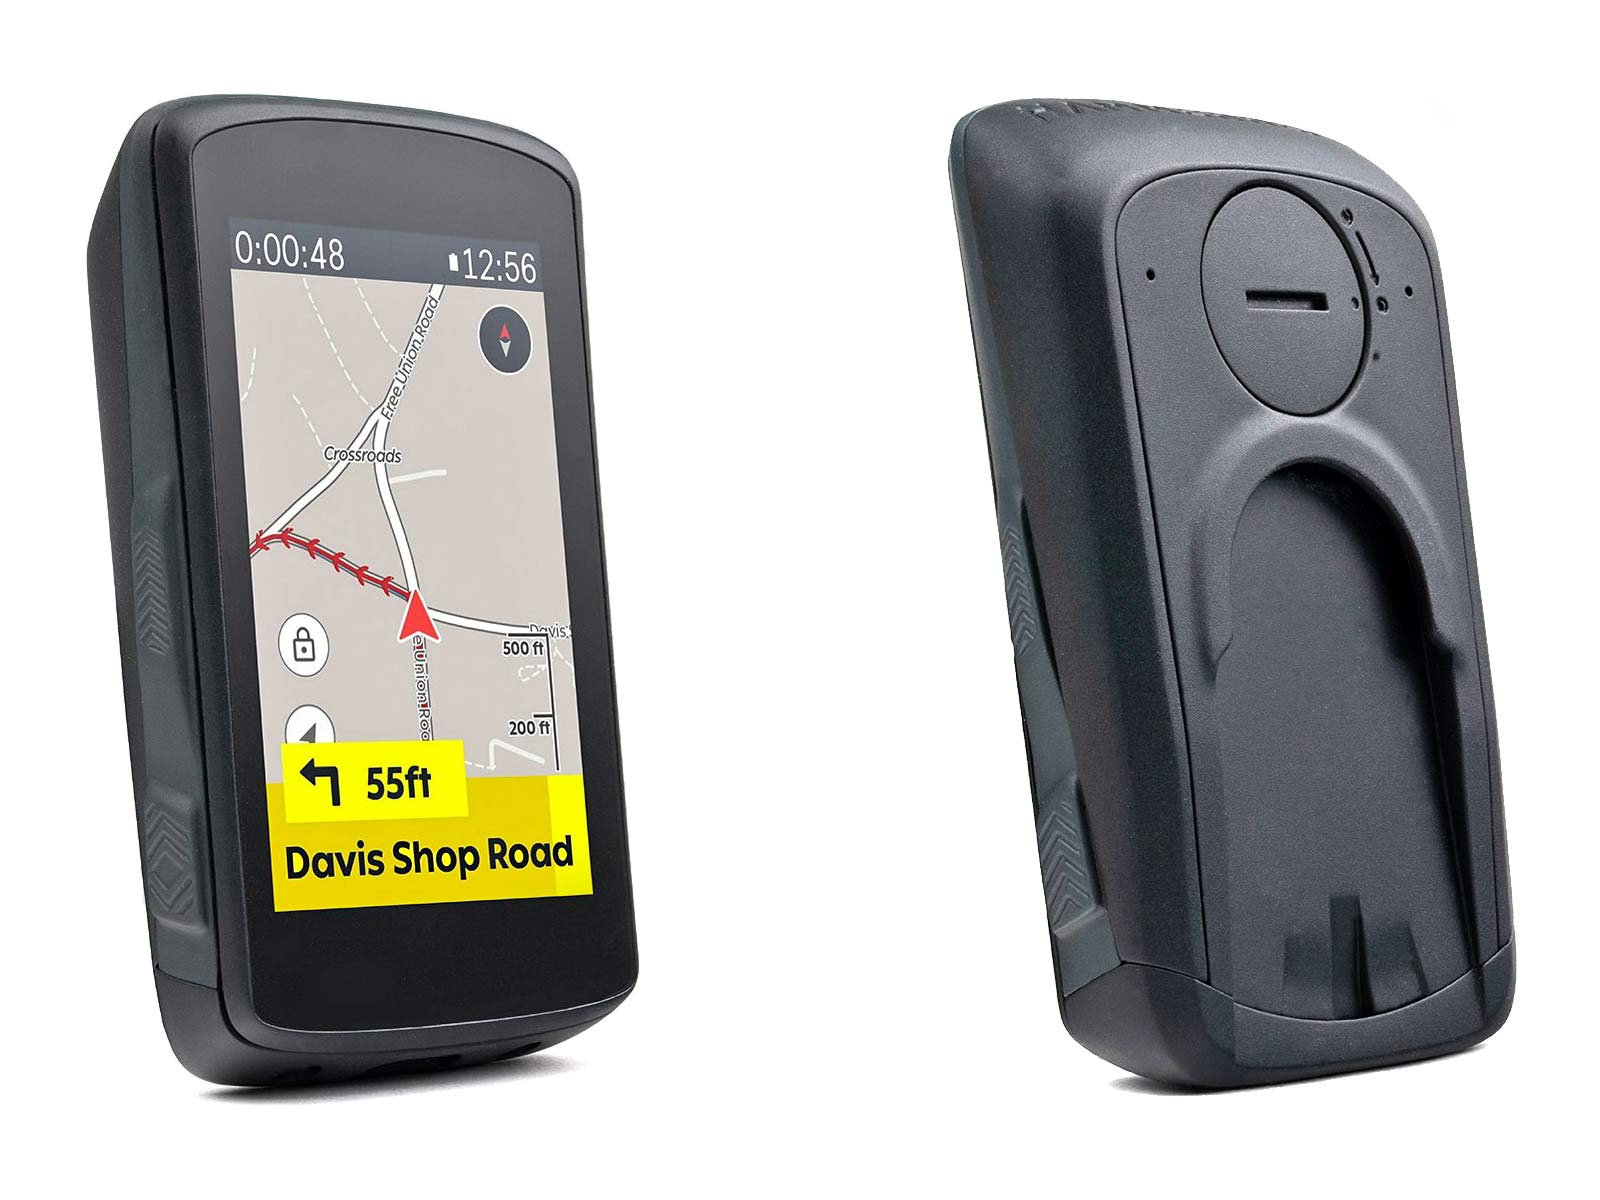 Hammerhead Karoo 2 cycling computer, powerful Android OS GPS cycling computer head unit, front & back